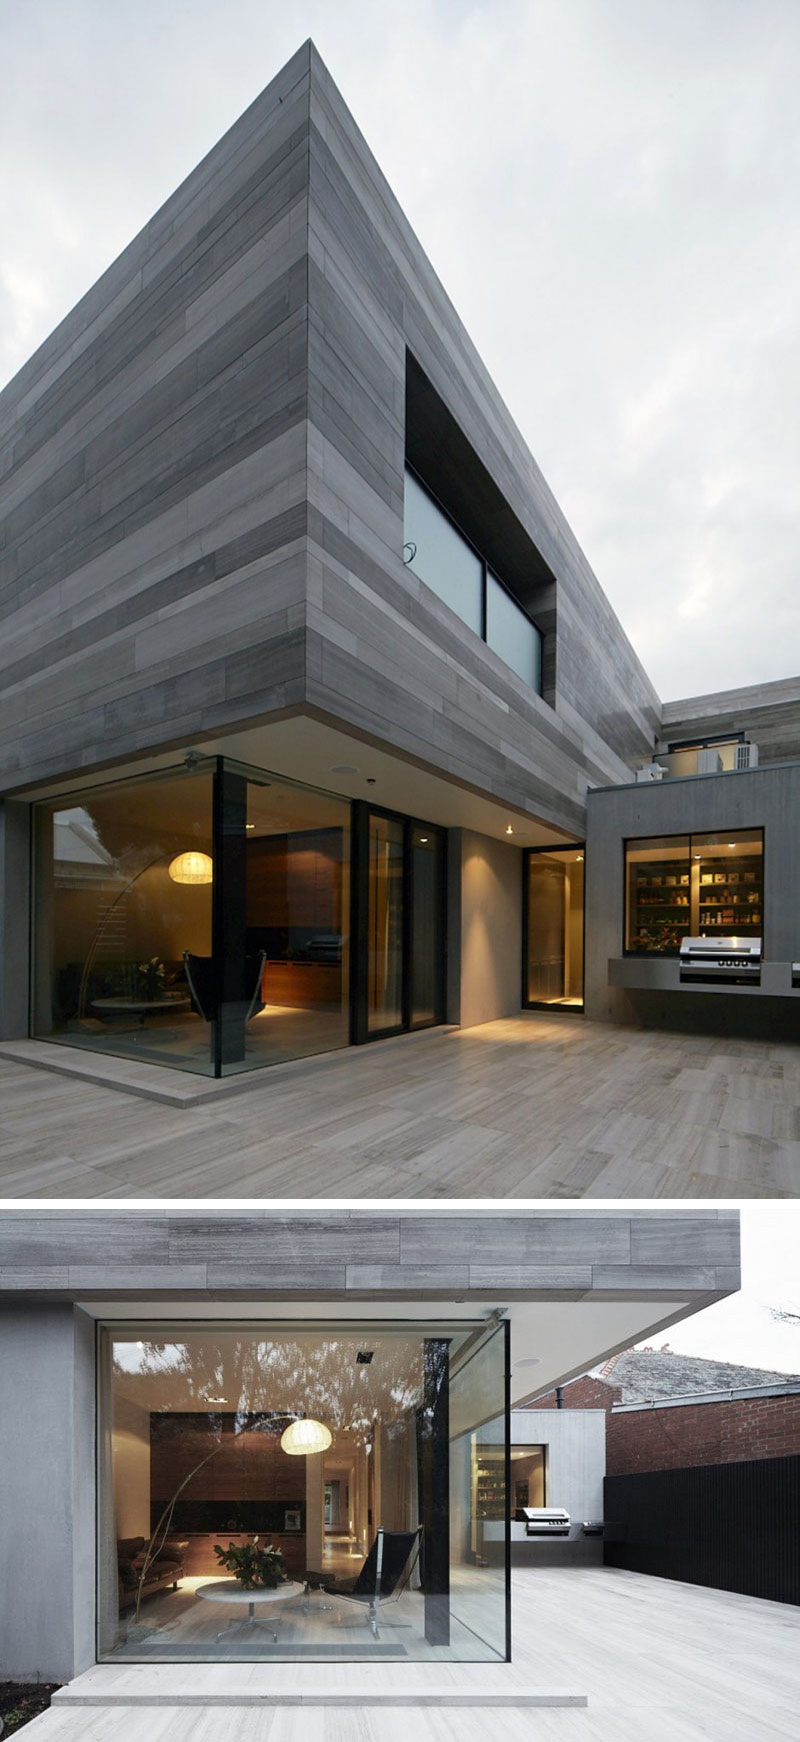 At the back of this modern home, large corner windows provide a view of the interior. A large patio and outdoor patio making this space great for entertaining.